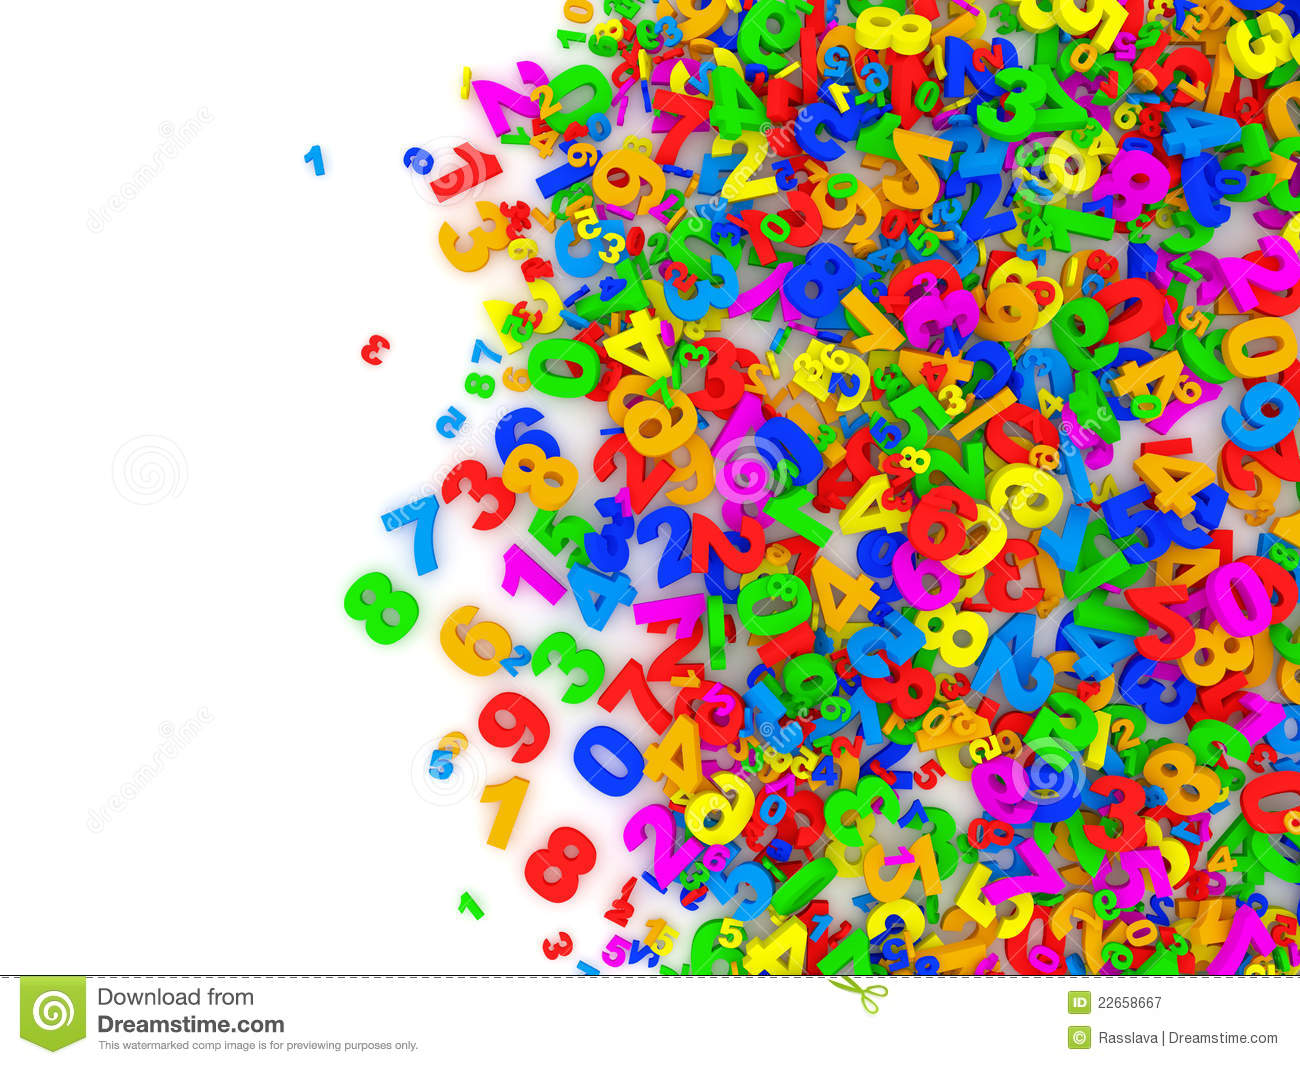 355022 Math 2 2 4 as well 355022 likewise Math Wallpaper in addition The Derivative Or Why People Hate Math moreover Royalty Free Stock Photography Colorful Numbers Abstract Background Image22658667. on wordmath